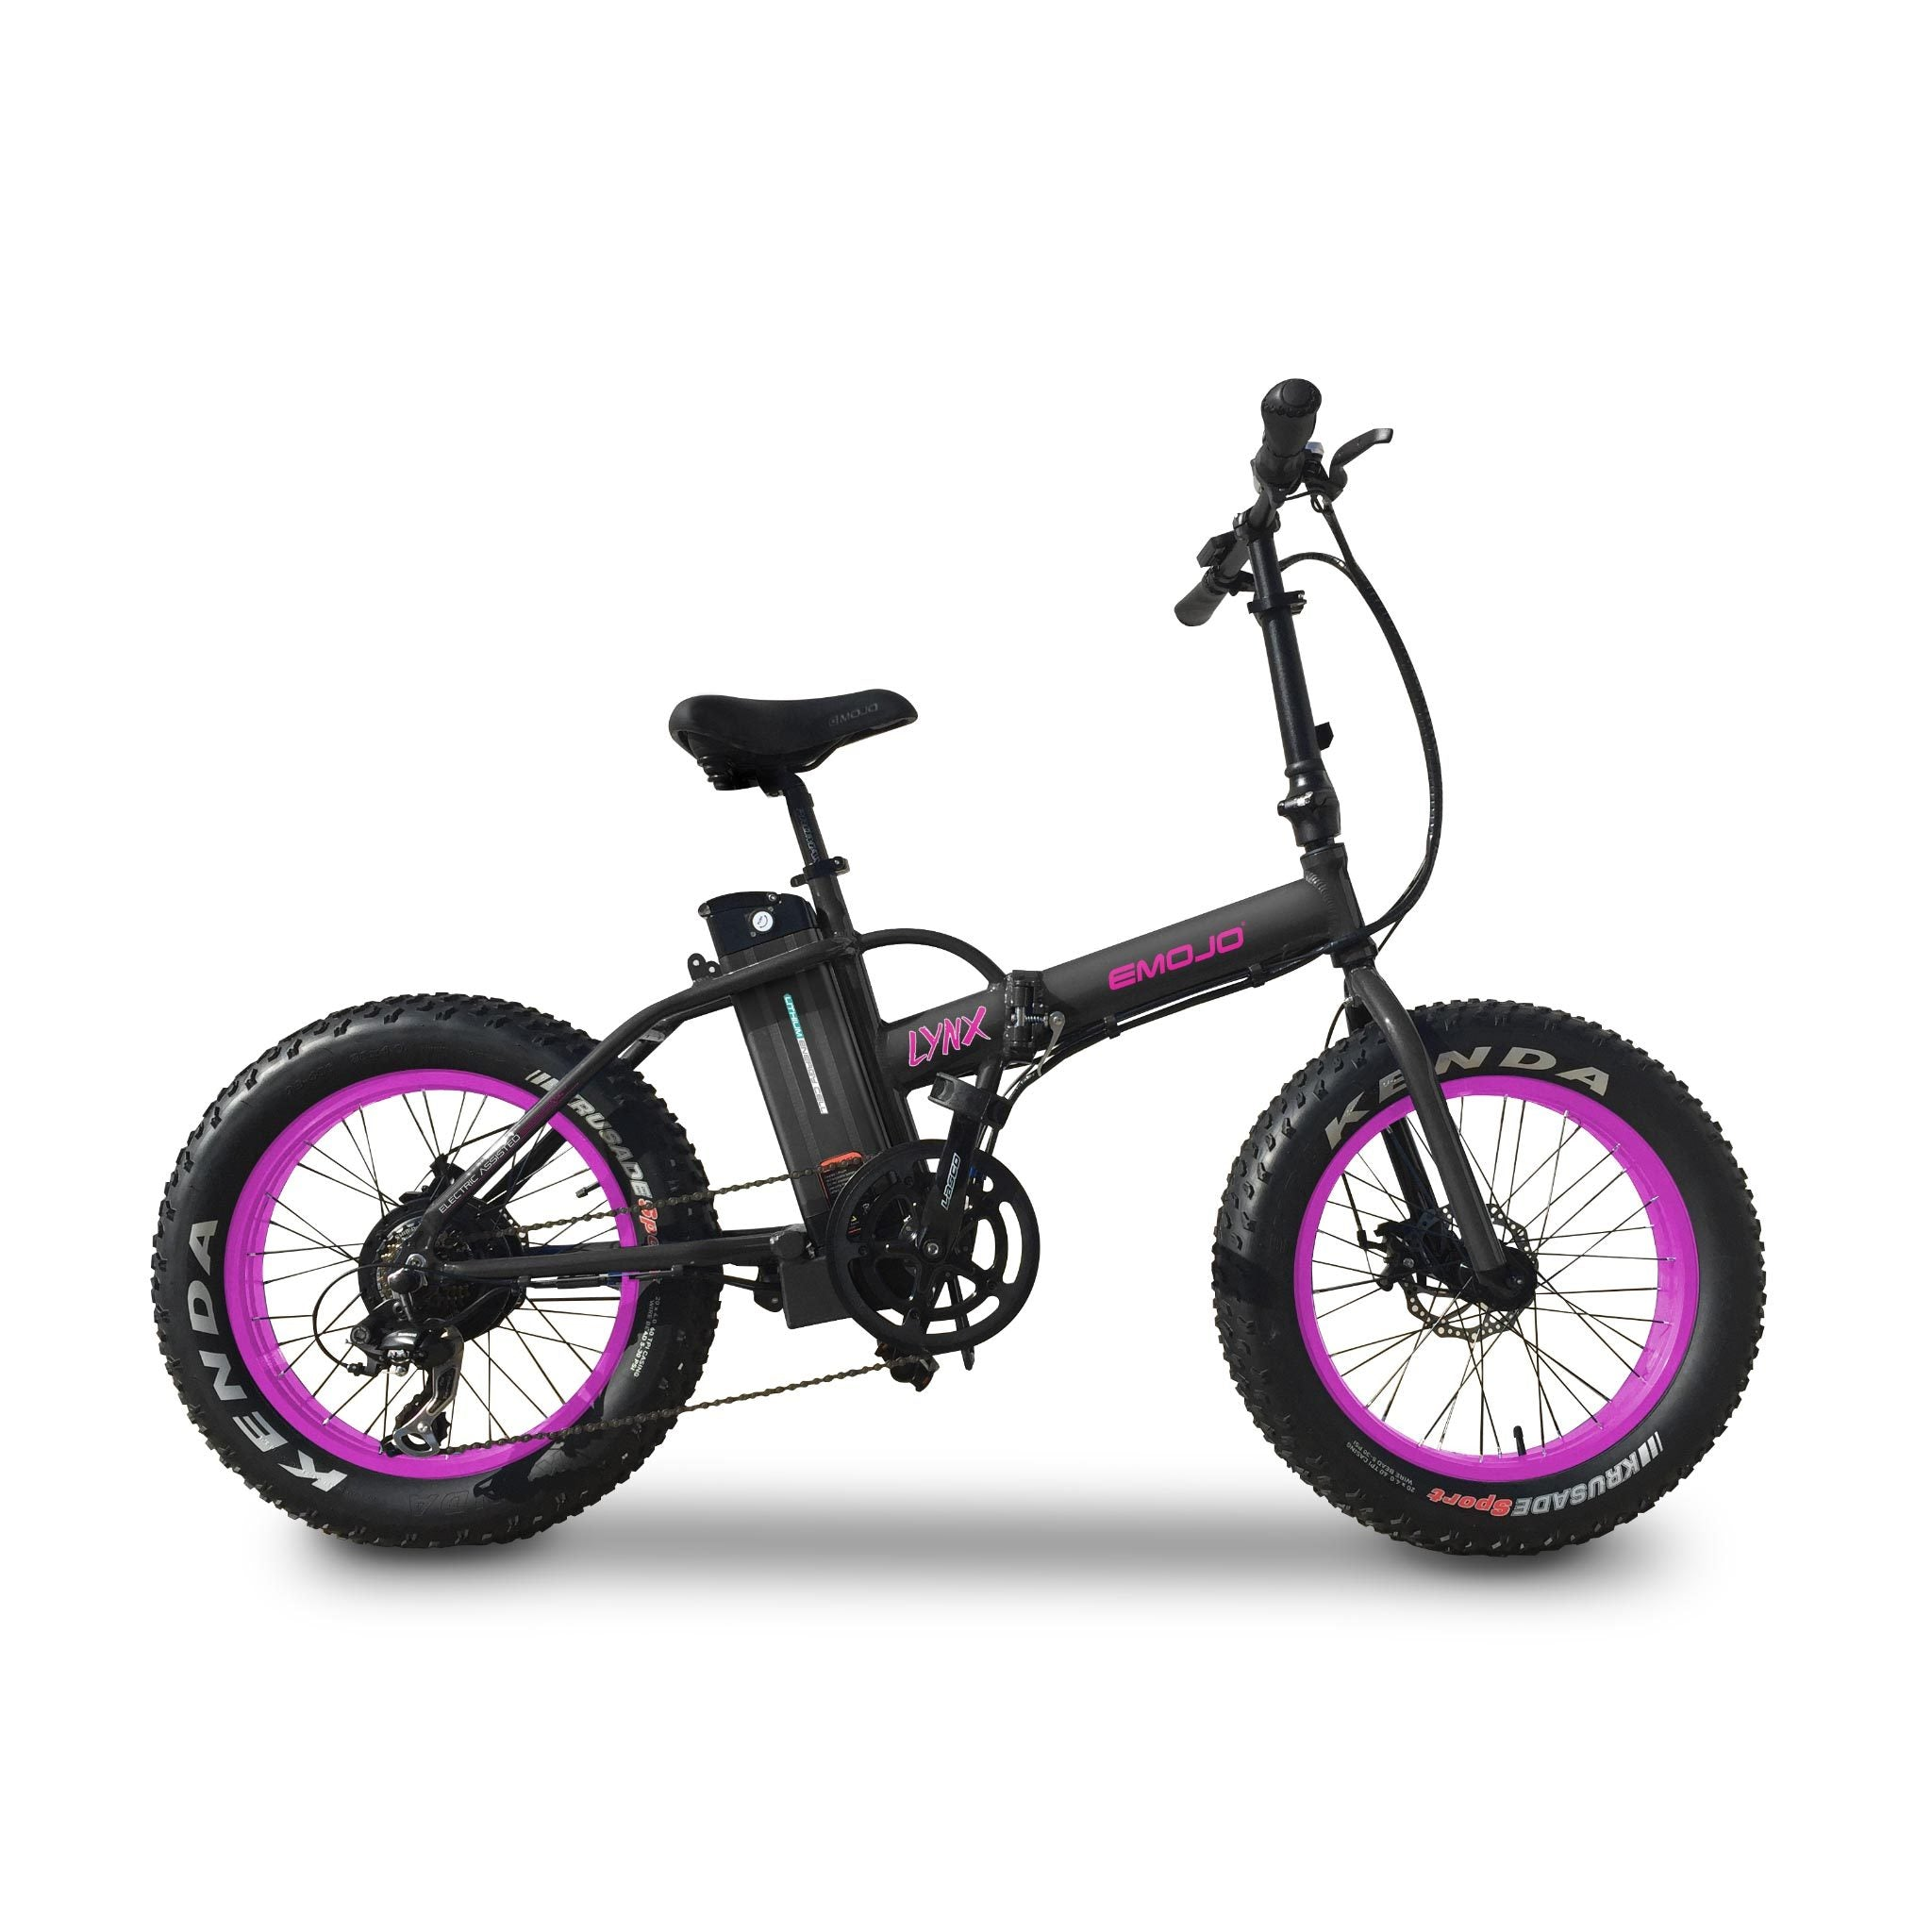 EMOJO LYNX Fat Tire Electric Bicycle 2019